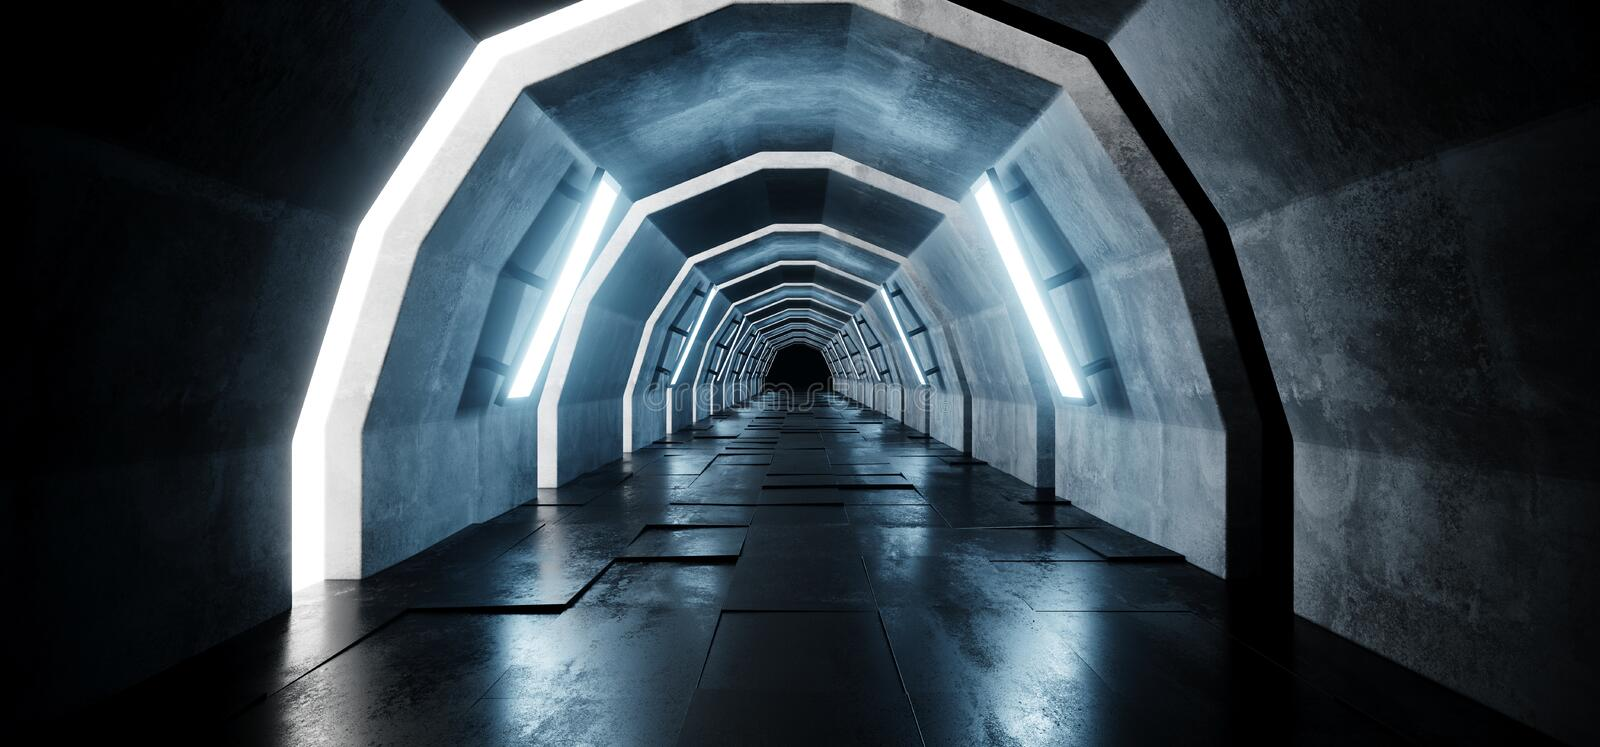 L'arc ovale de Sci fi a formé le tunnel réfléchi tuile en béton Hall With Blue Lights Futuristic de couloir de plancher de long g illustration stock